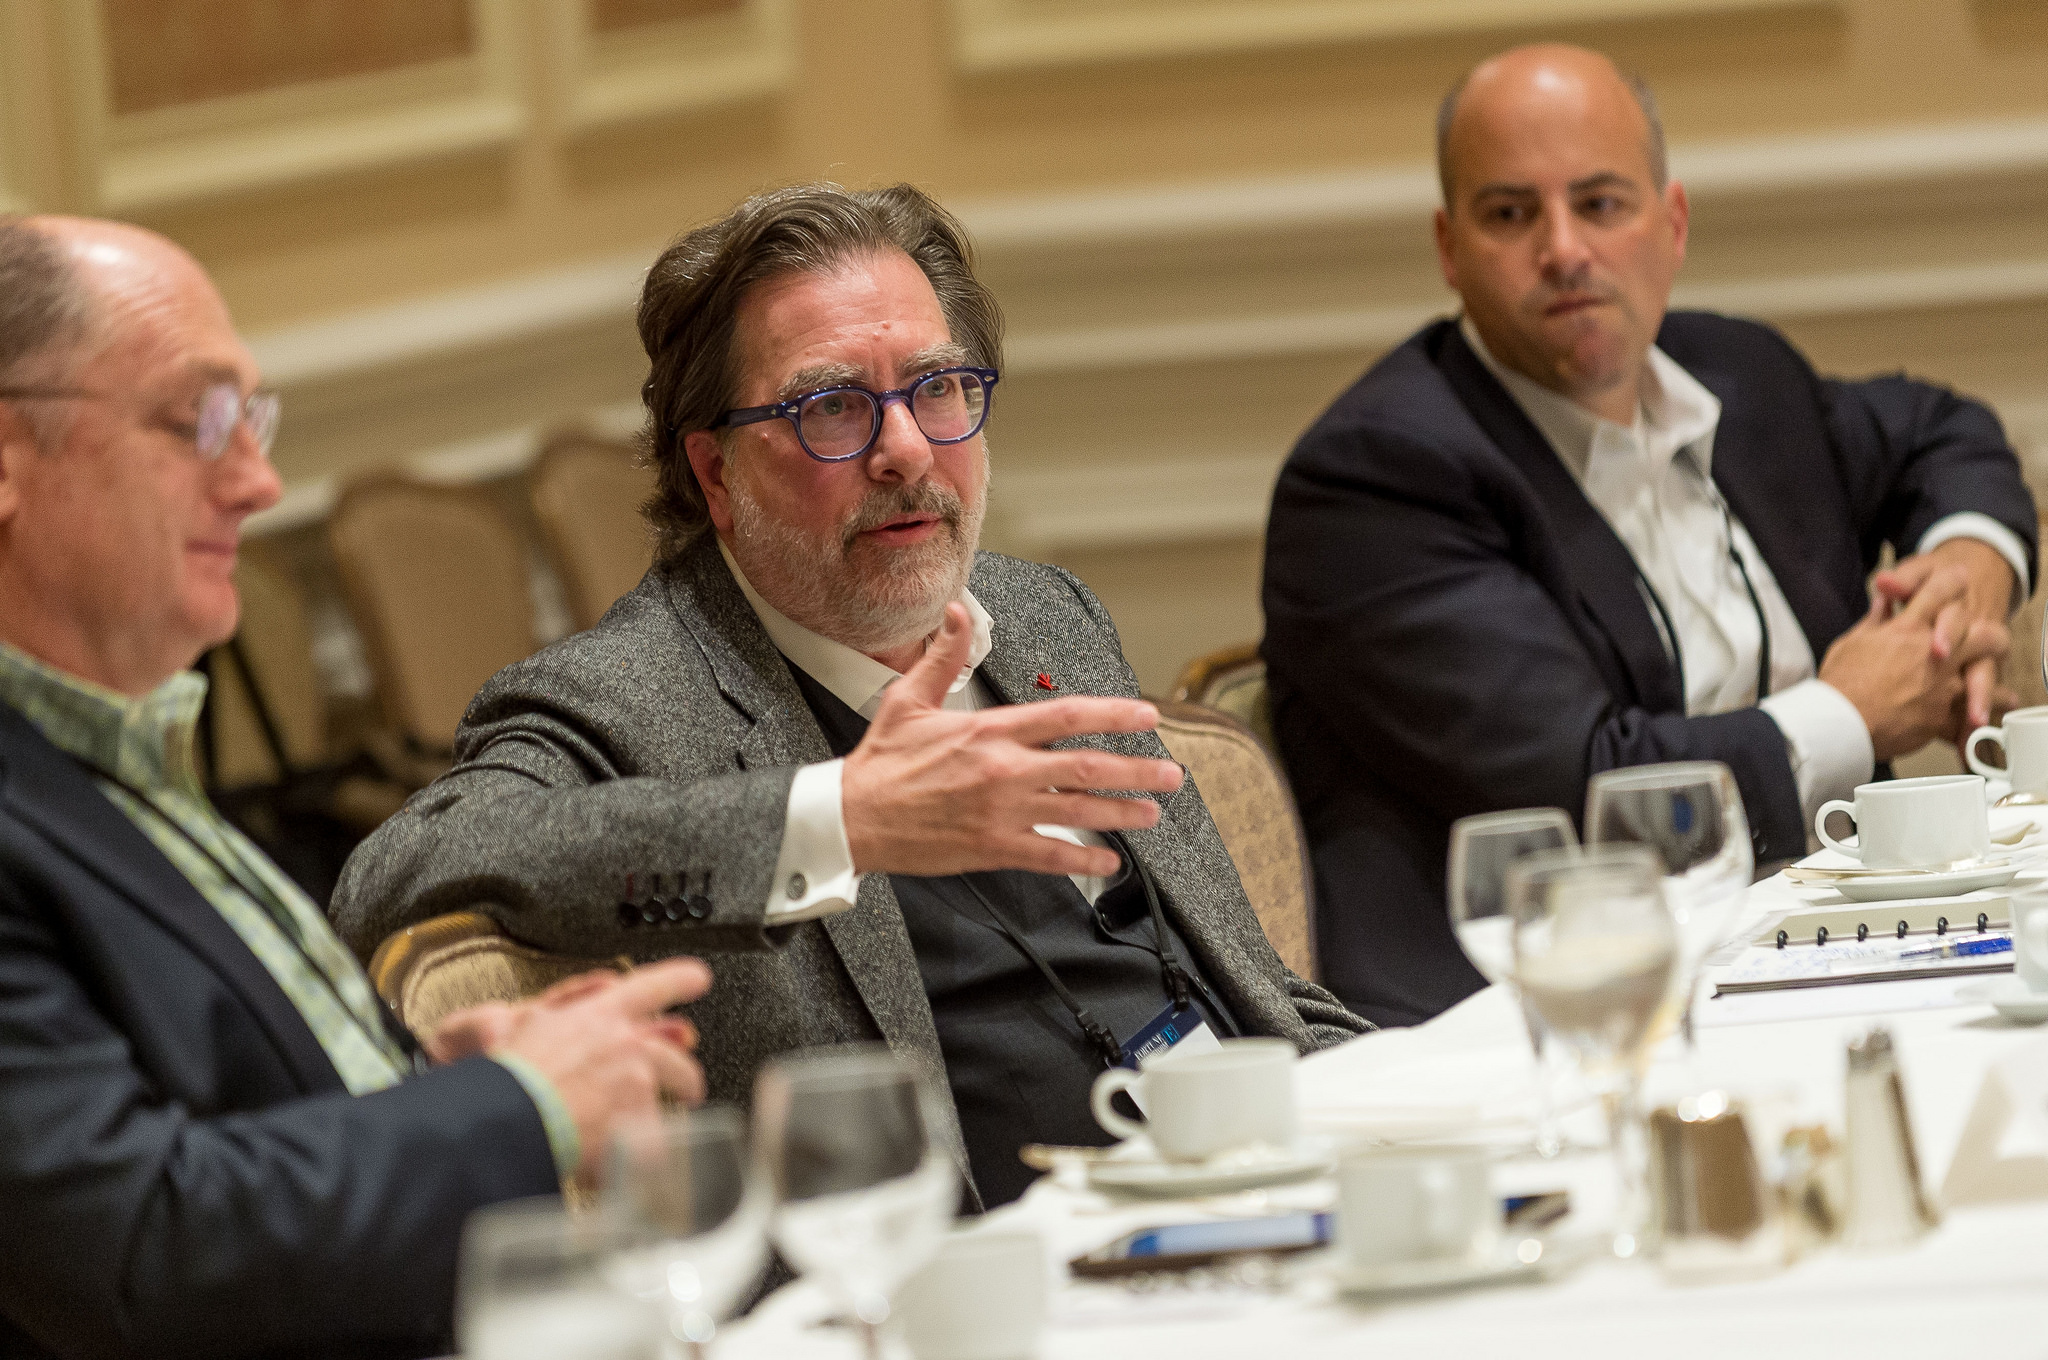 Will Sarni (center), director and practice leader of water strategy at Deloitte, at Fortune's Brainstorm E conference